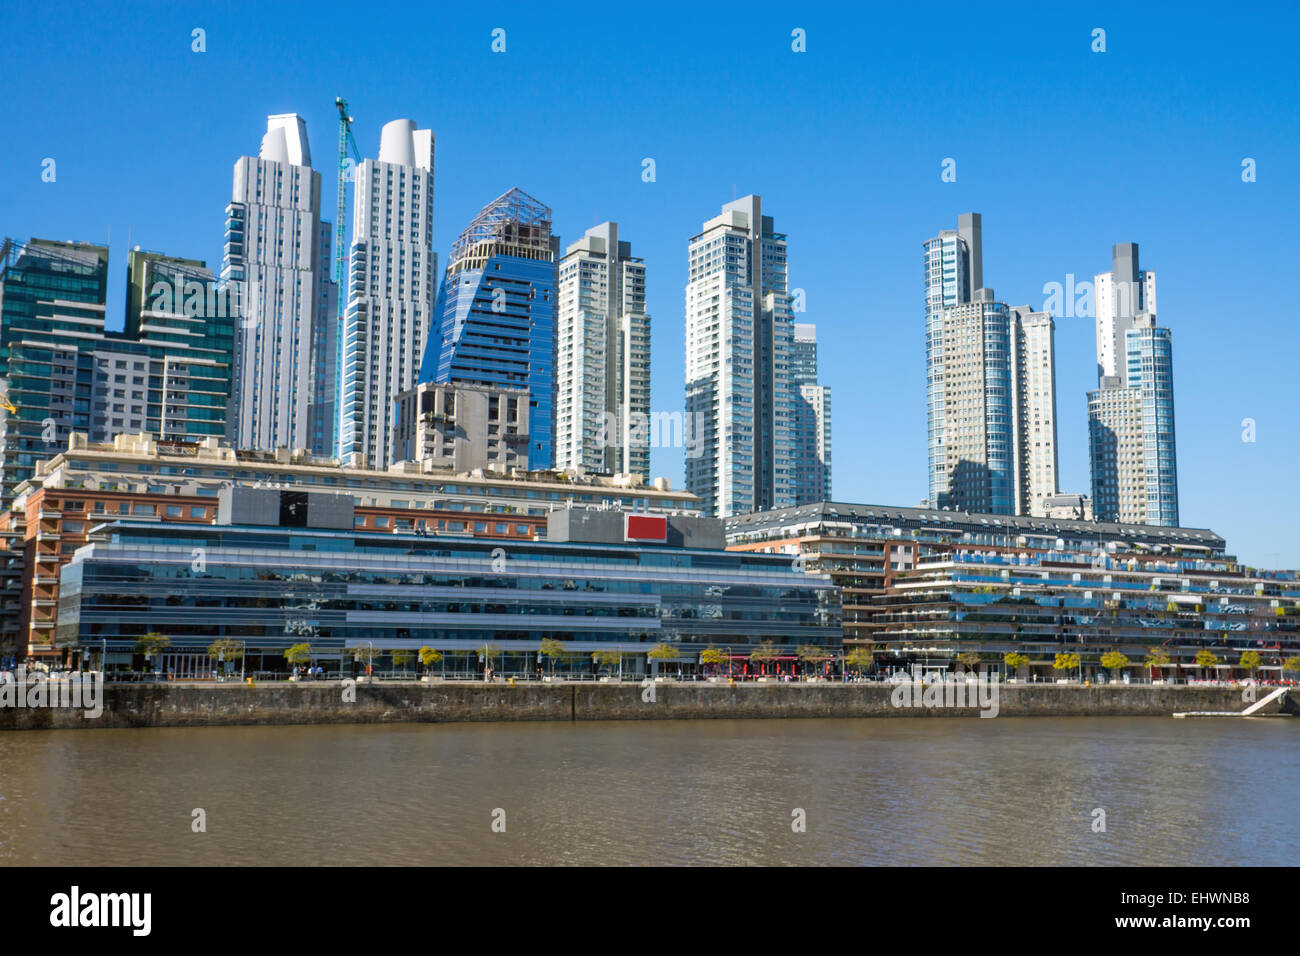 Skyscrapers in Buenos Aires - Stock Image